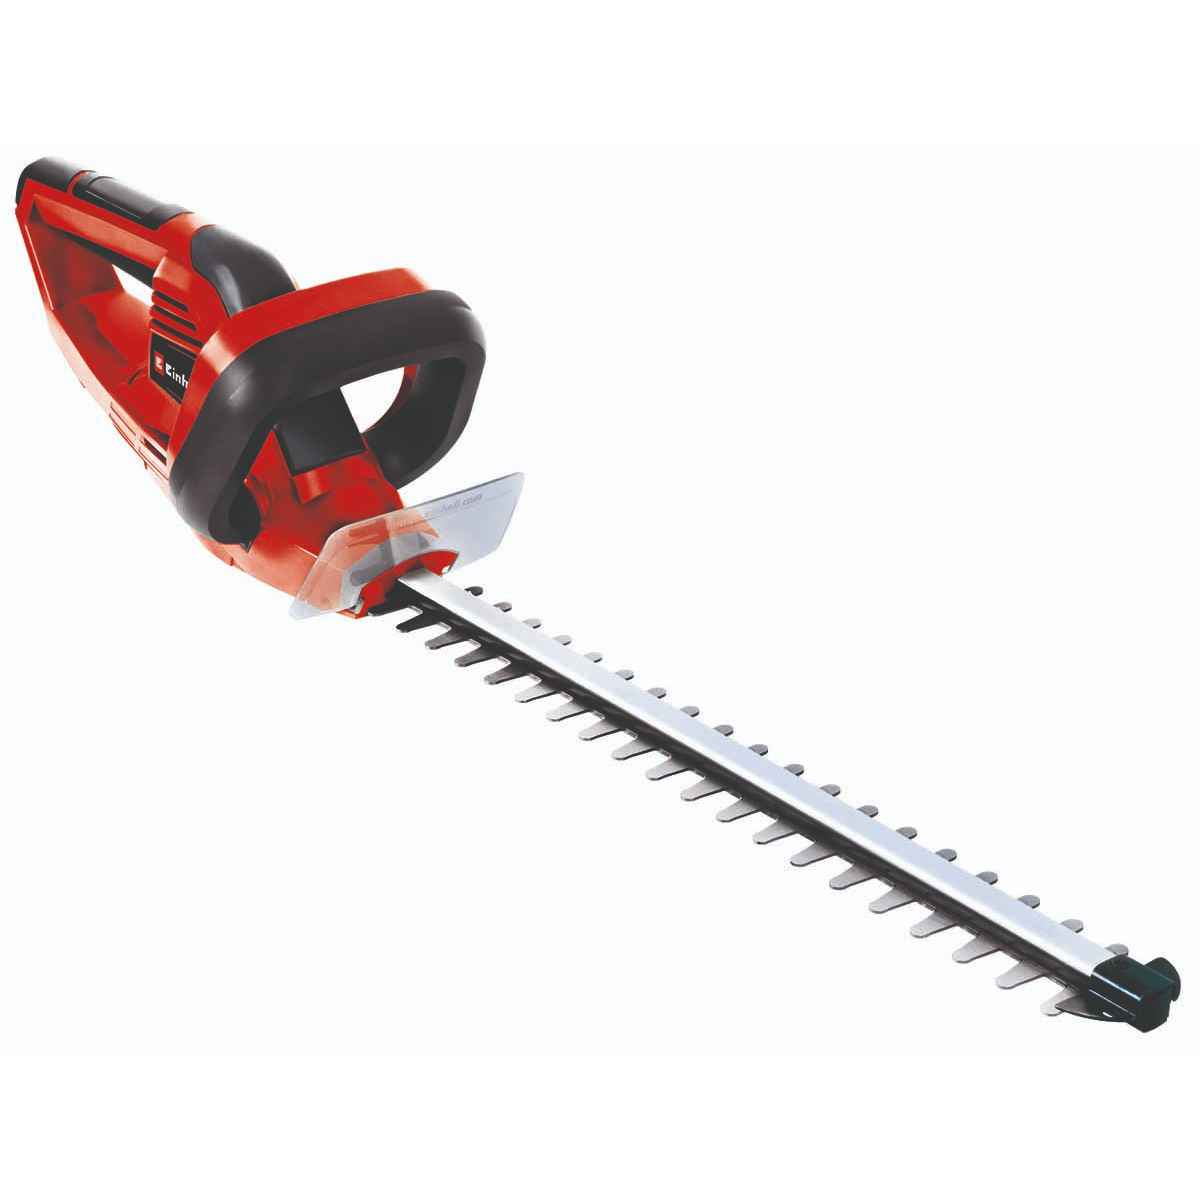 Einhell 420W Electric Hedge Trimmer